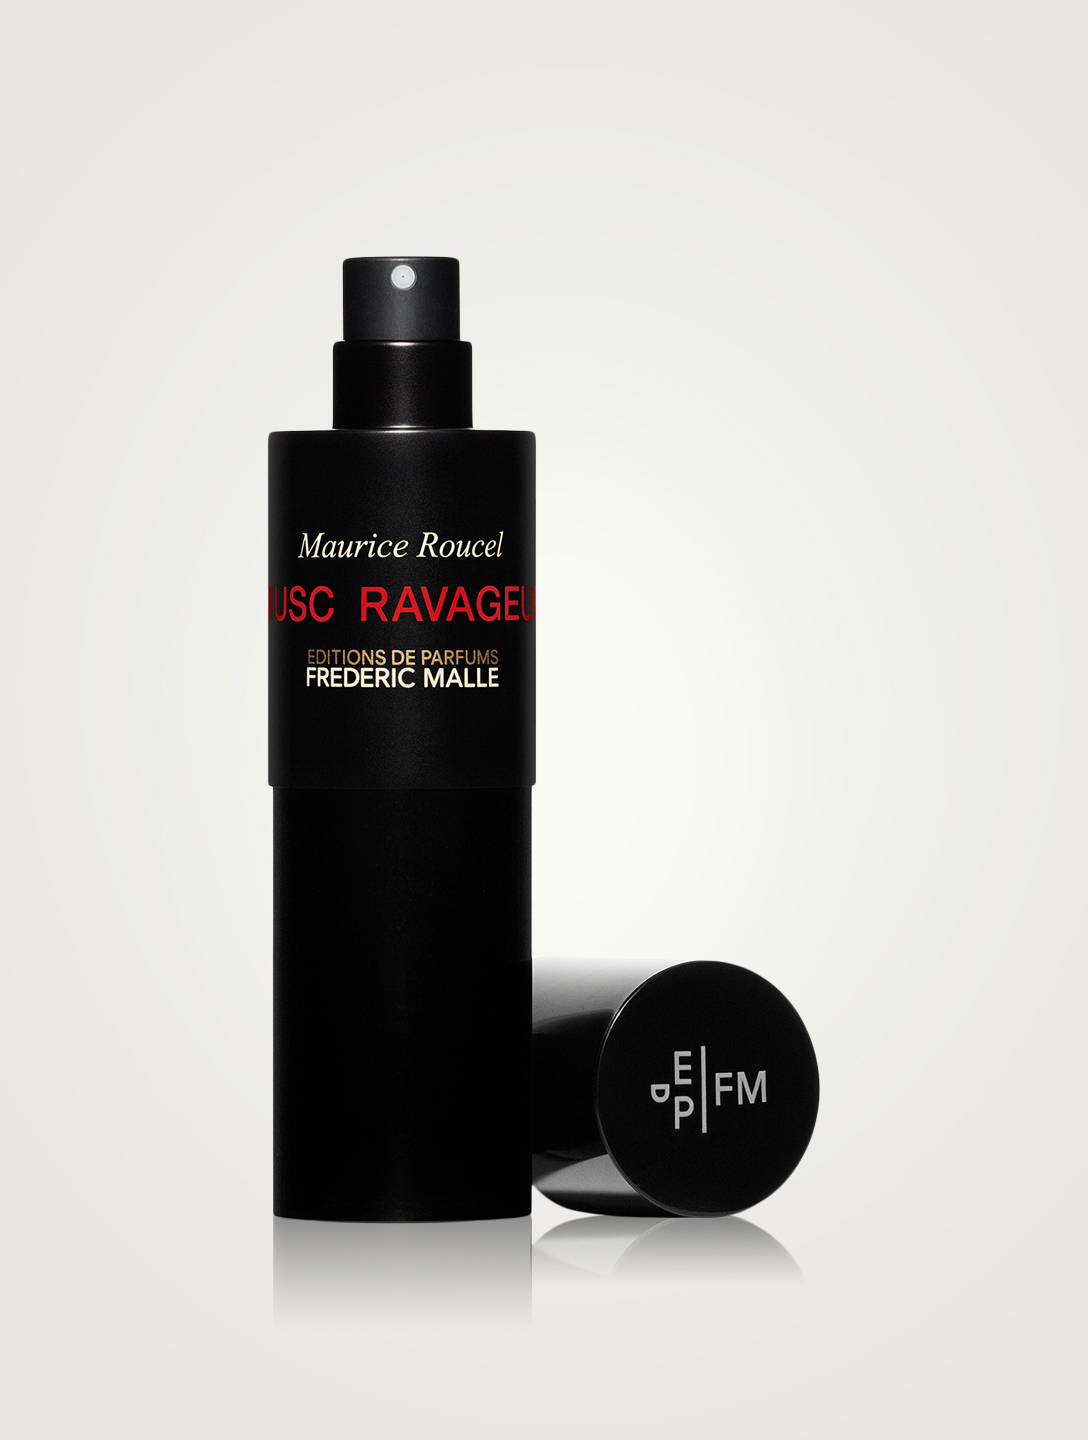 FREDERIC MALLE Musc Ravageur Perfume Beauty